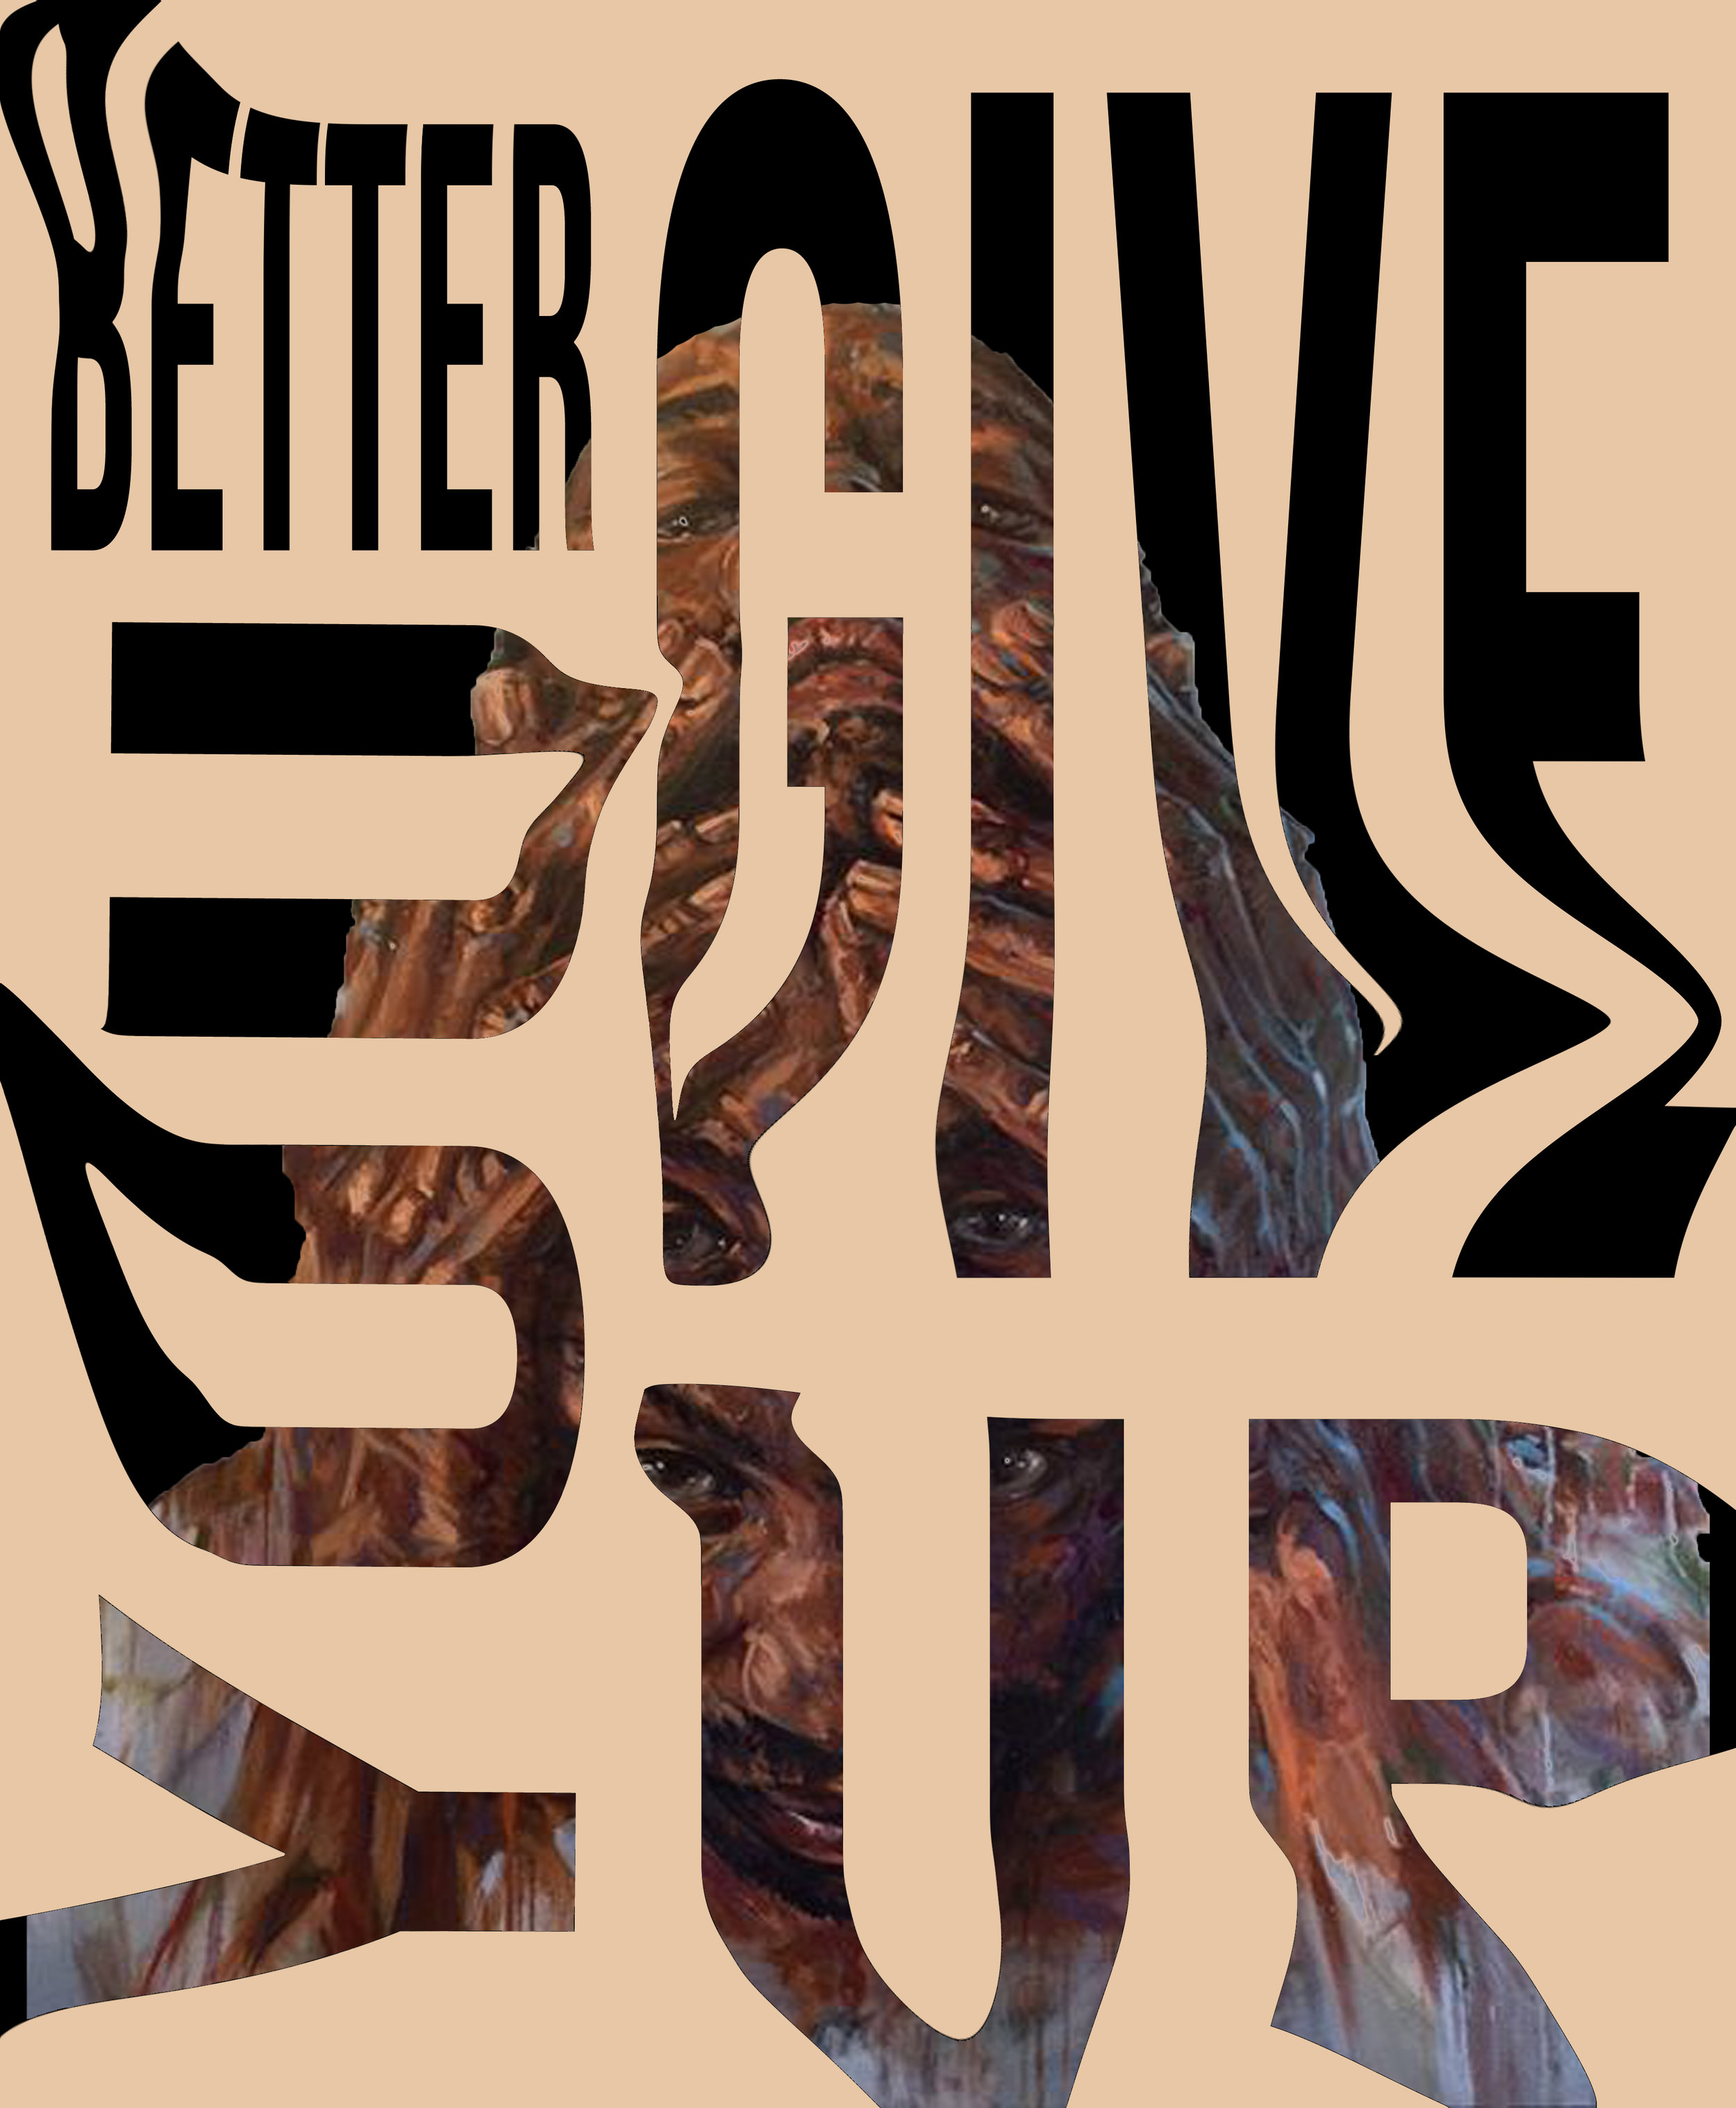 bettergiveyouup2.jpg